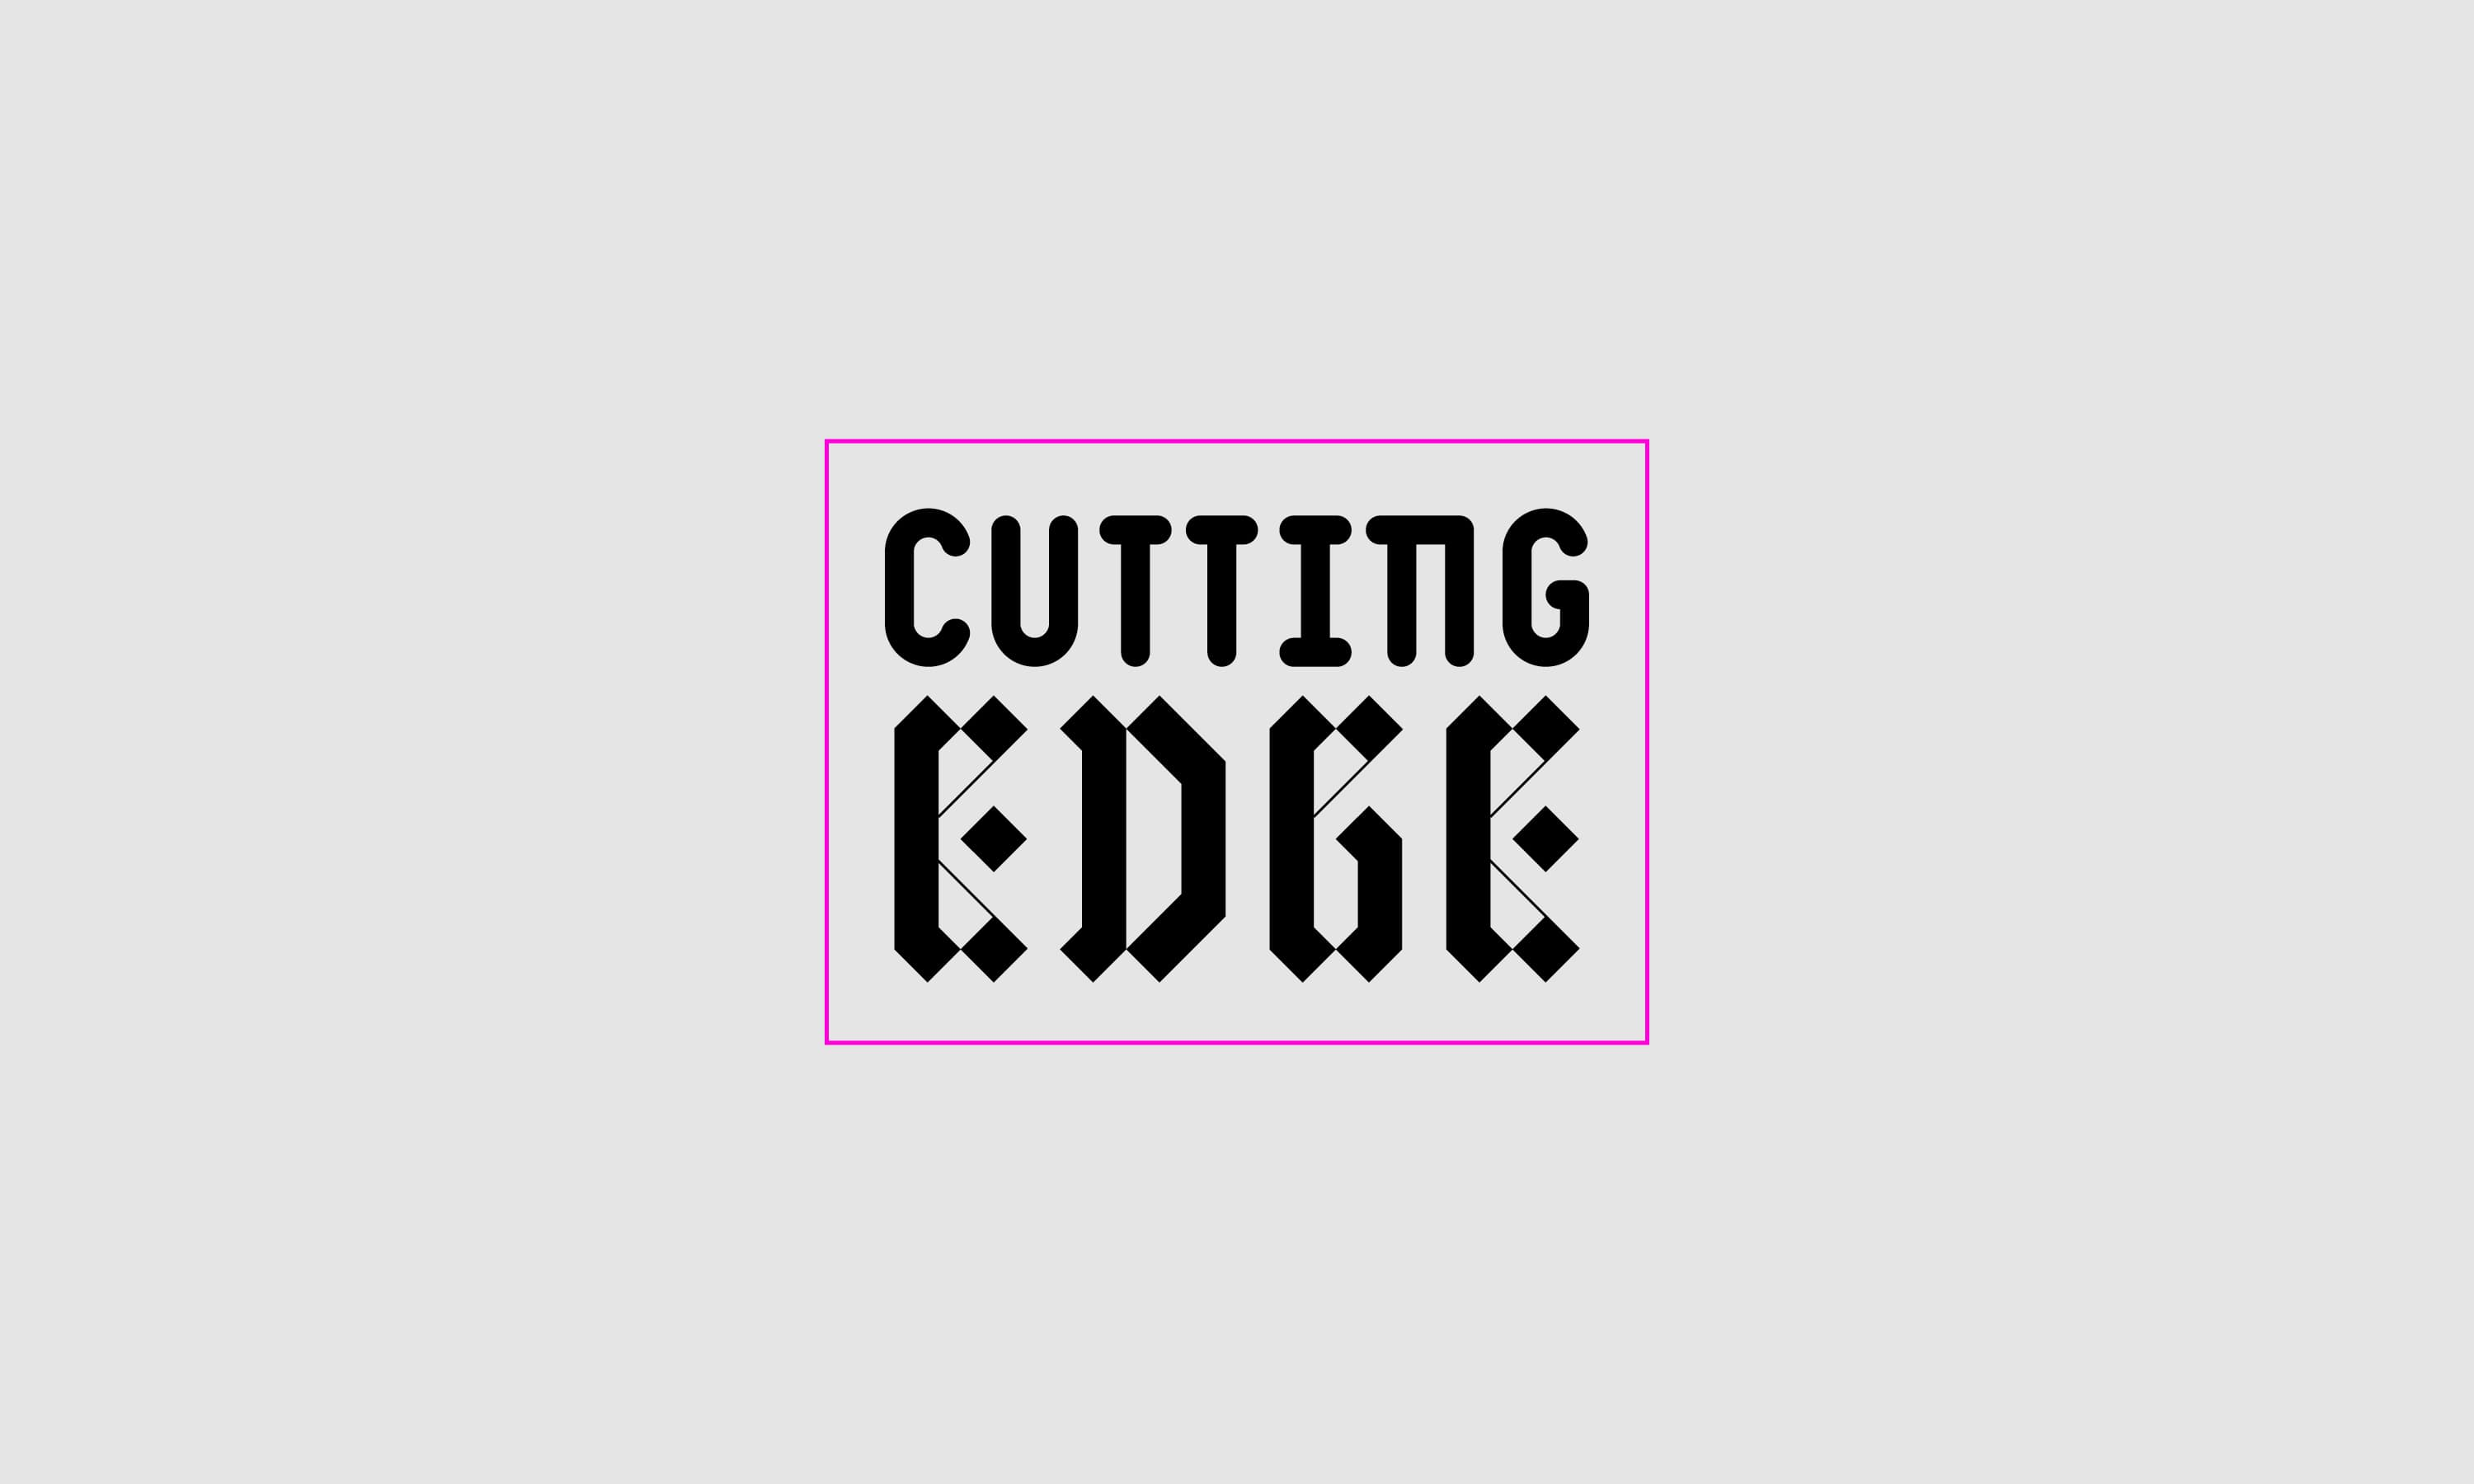 MISC-cuttingedge-1